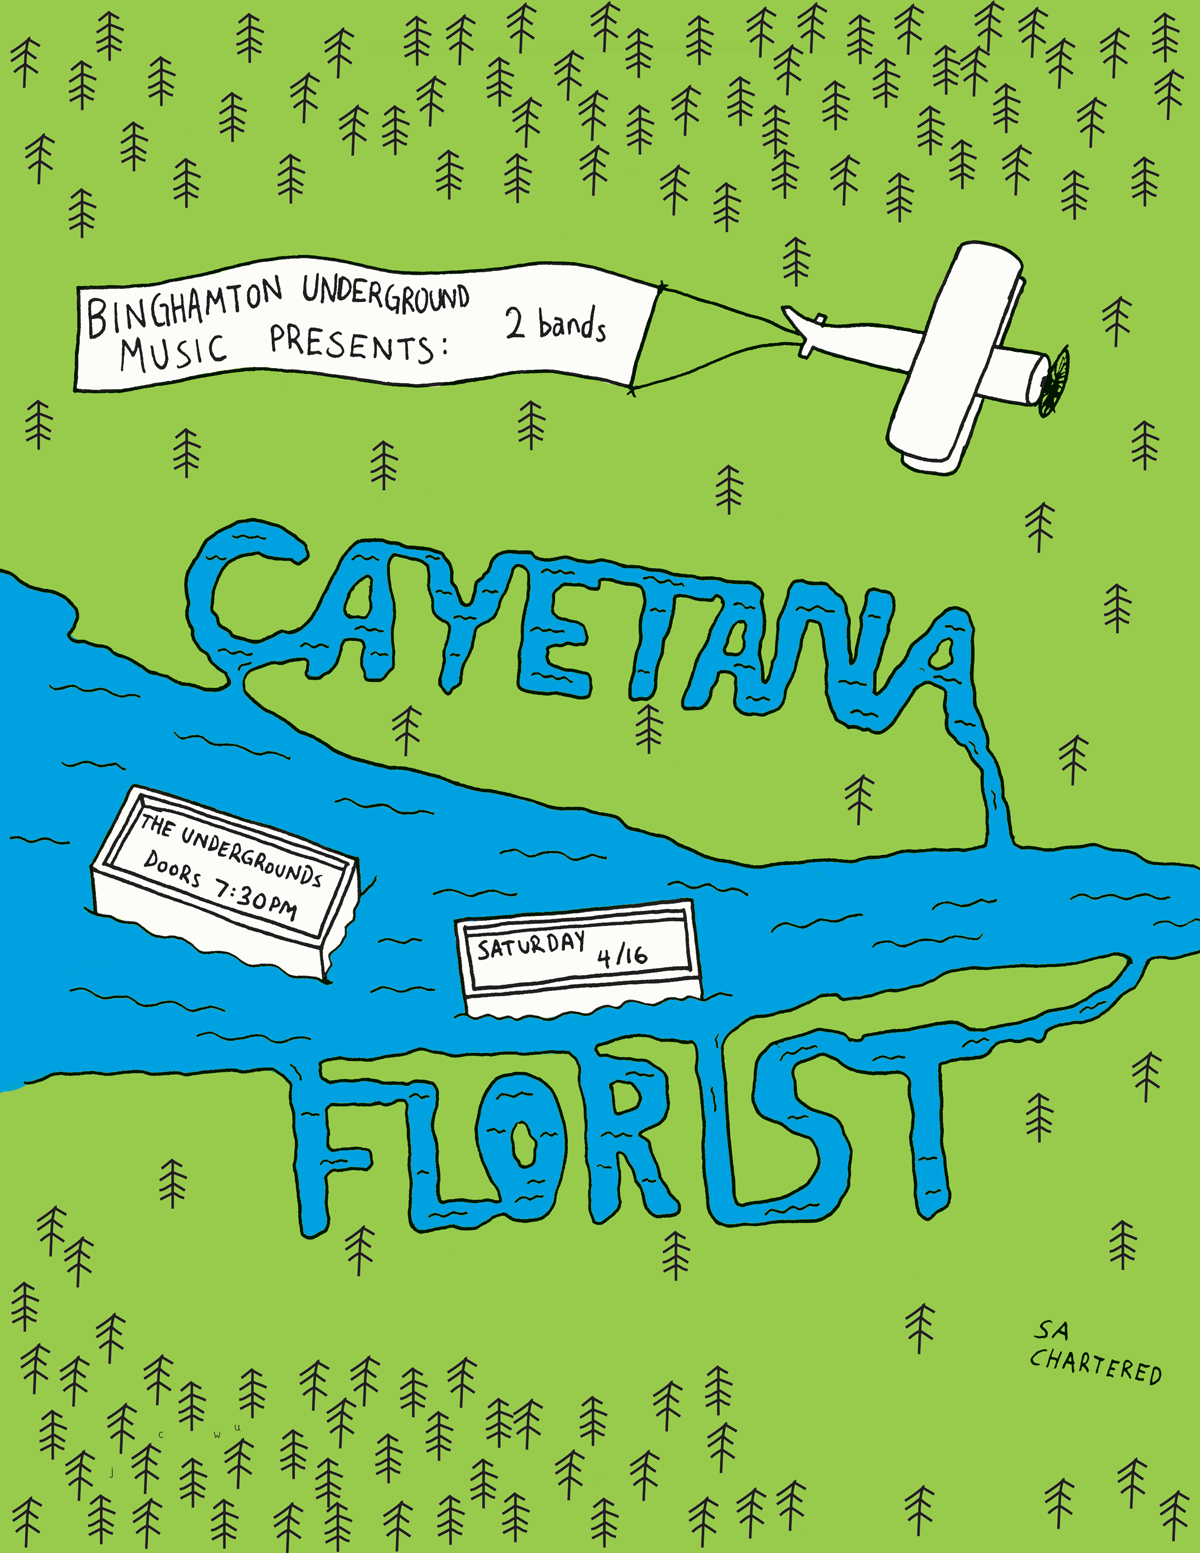 Concert poster for Florist and Cayetana in Binghamton